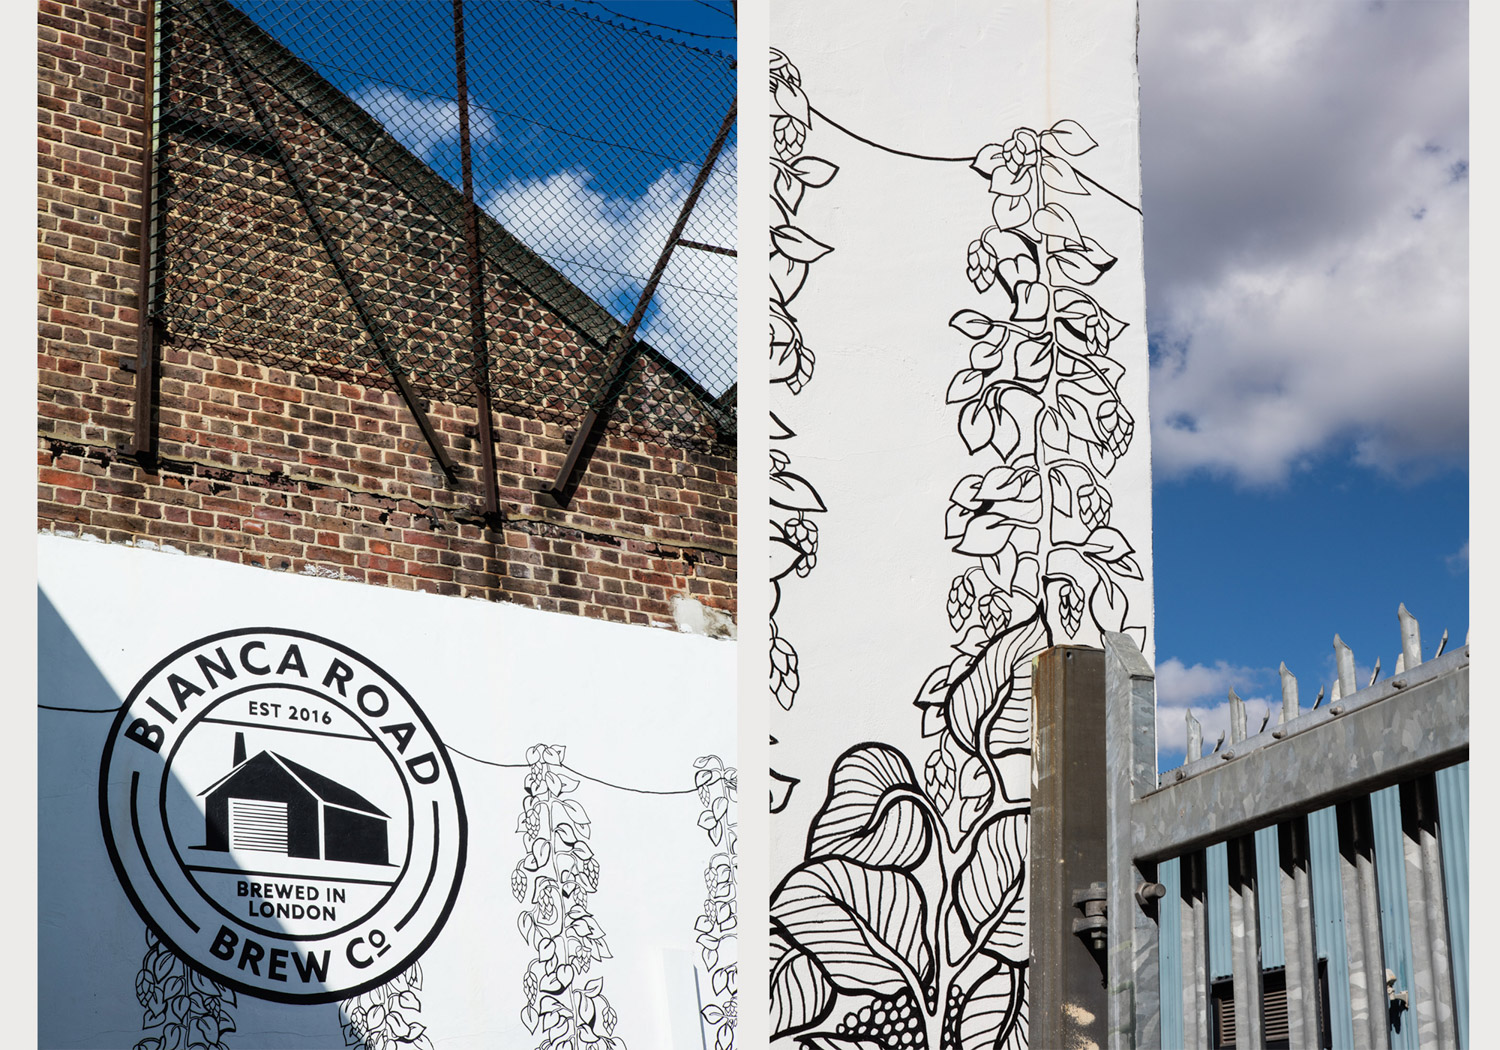 Bianca Road Brewery – Image by Alexander Christie-19